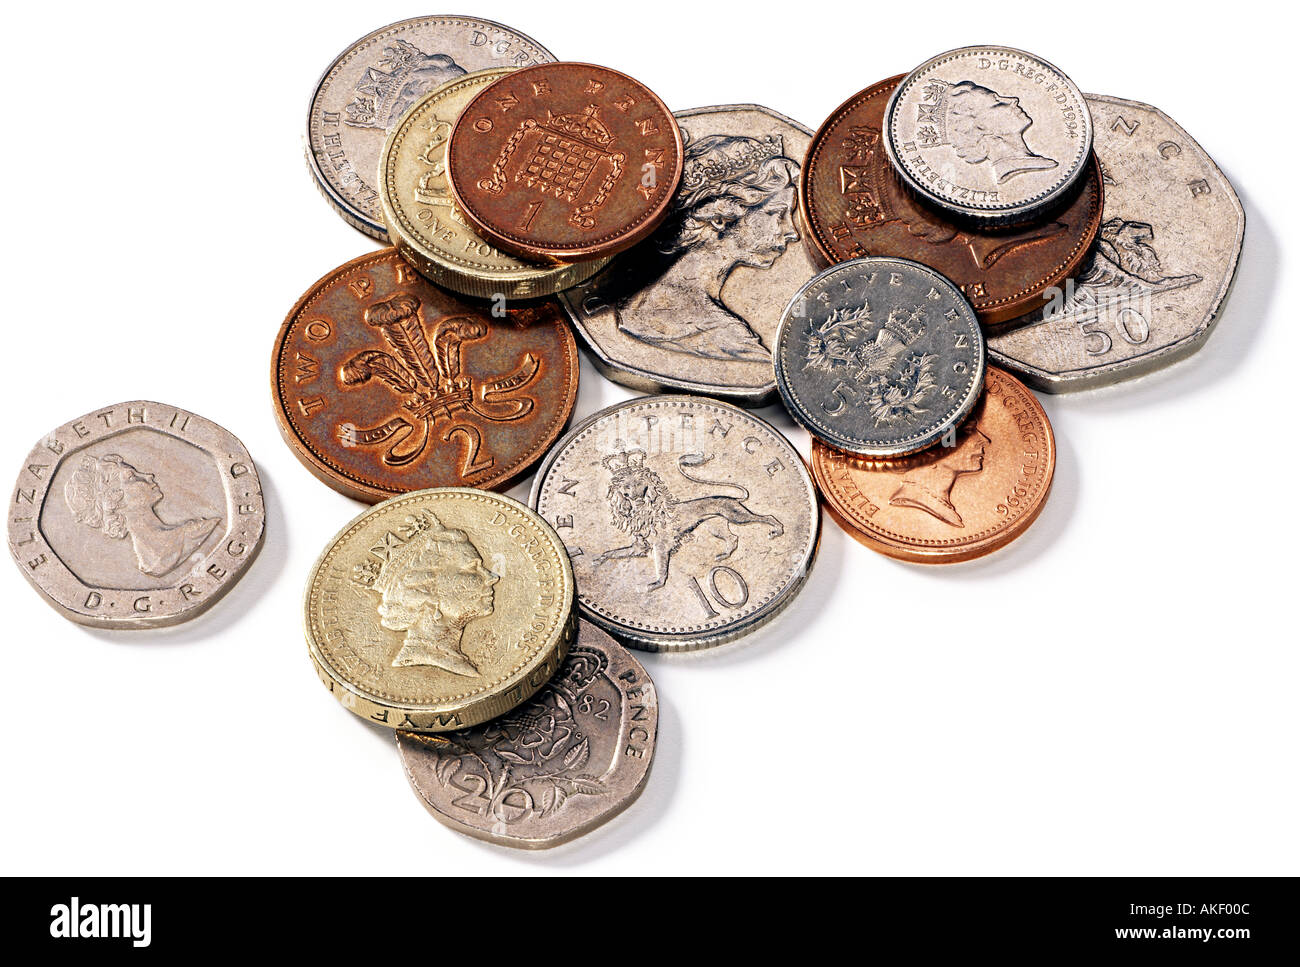 coins coin british pound and pence currency of great ...